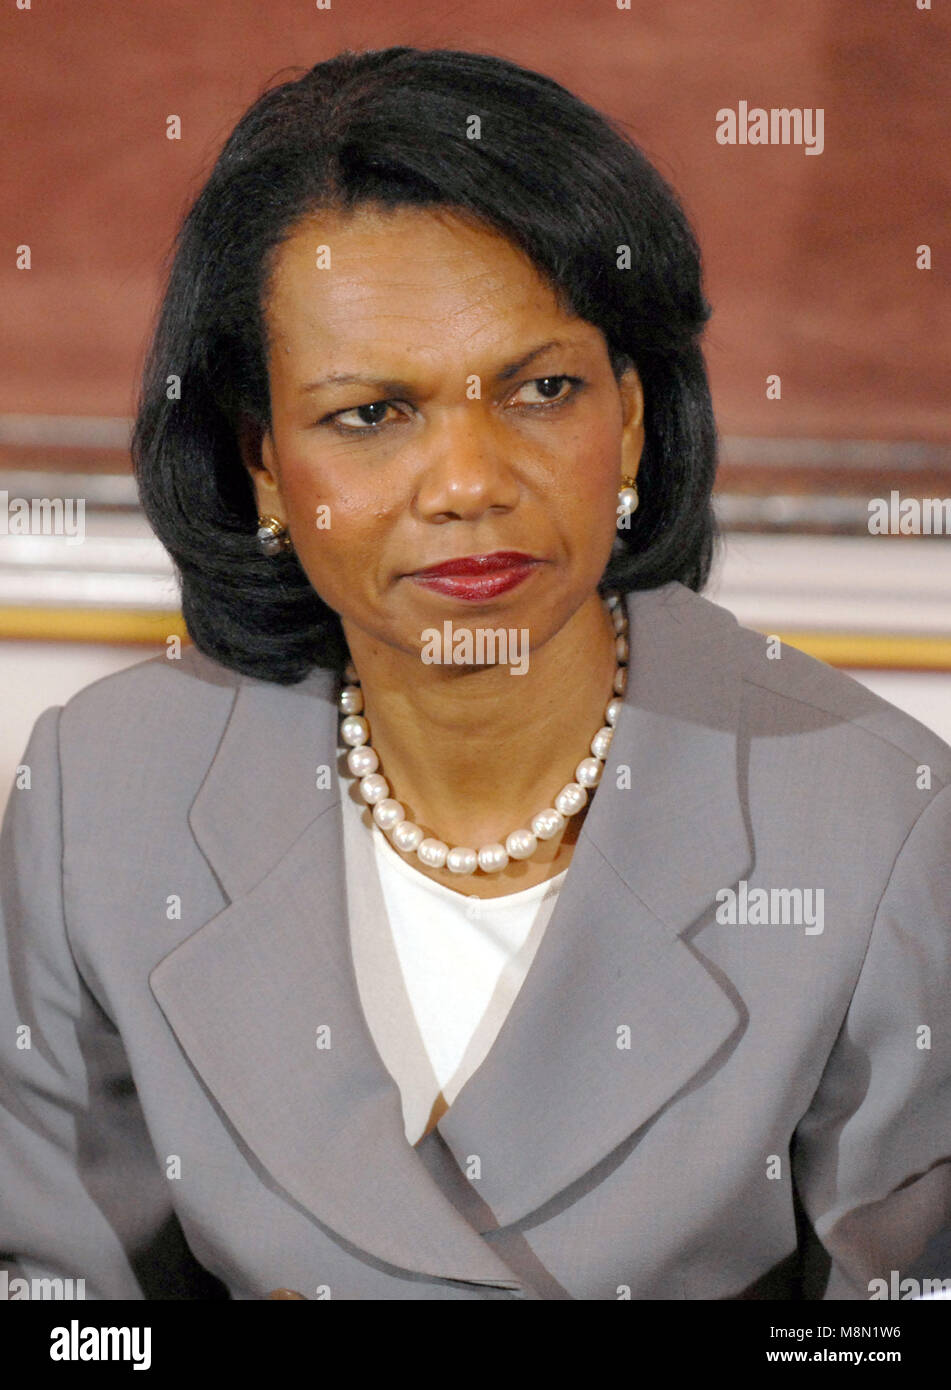 United States Secretary of State Condoleezza Rice listens as US President George W. Bush announced she would be - Stock Image